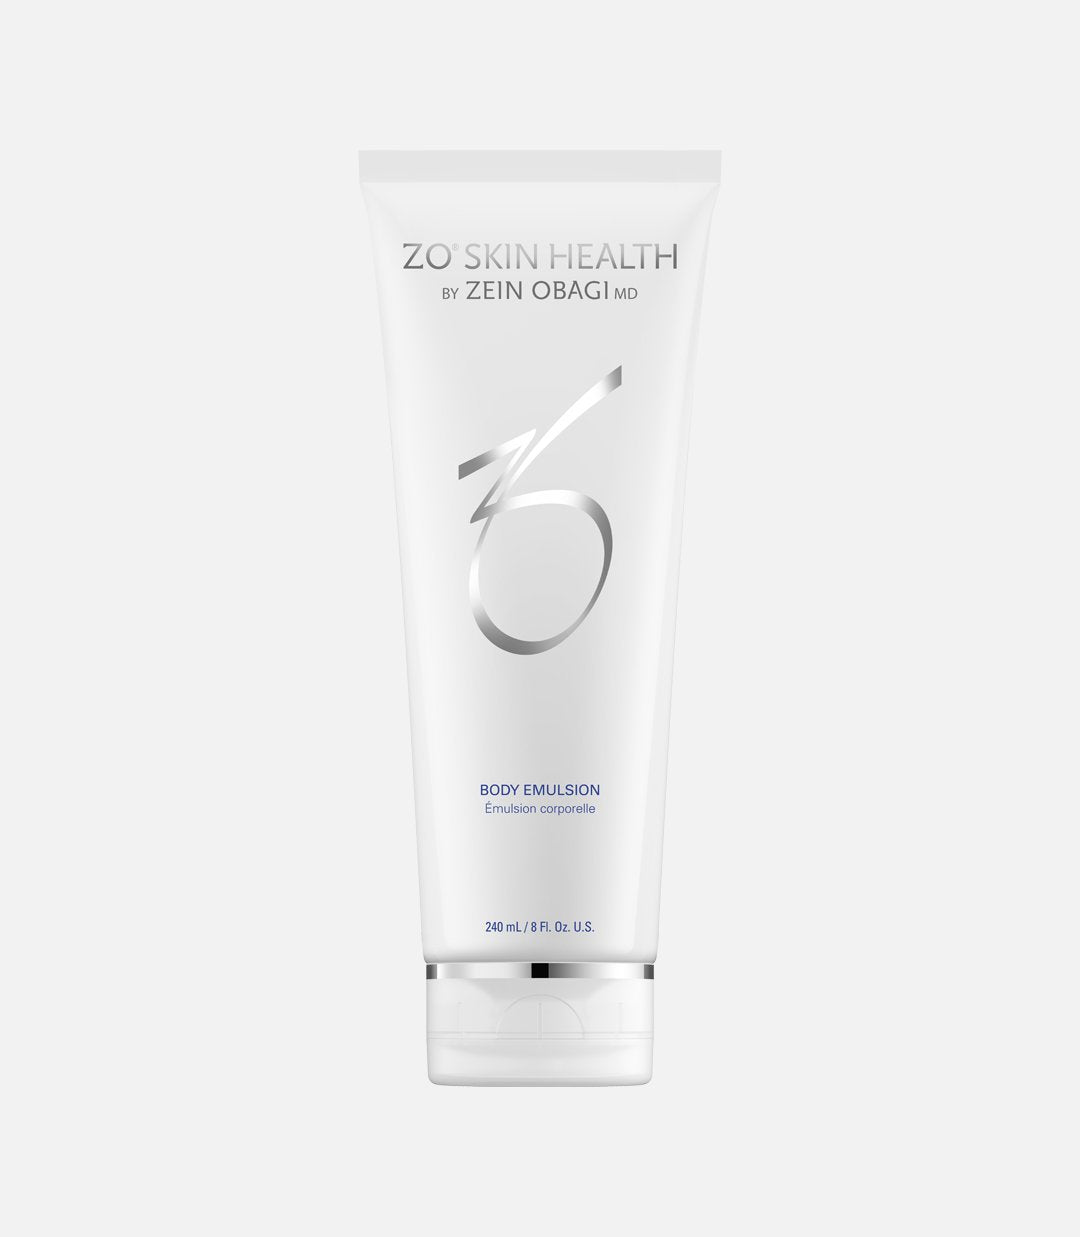 Body Emulsion - 240 mL / 8 Fl. Oz. - 2